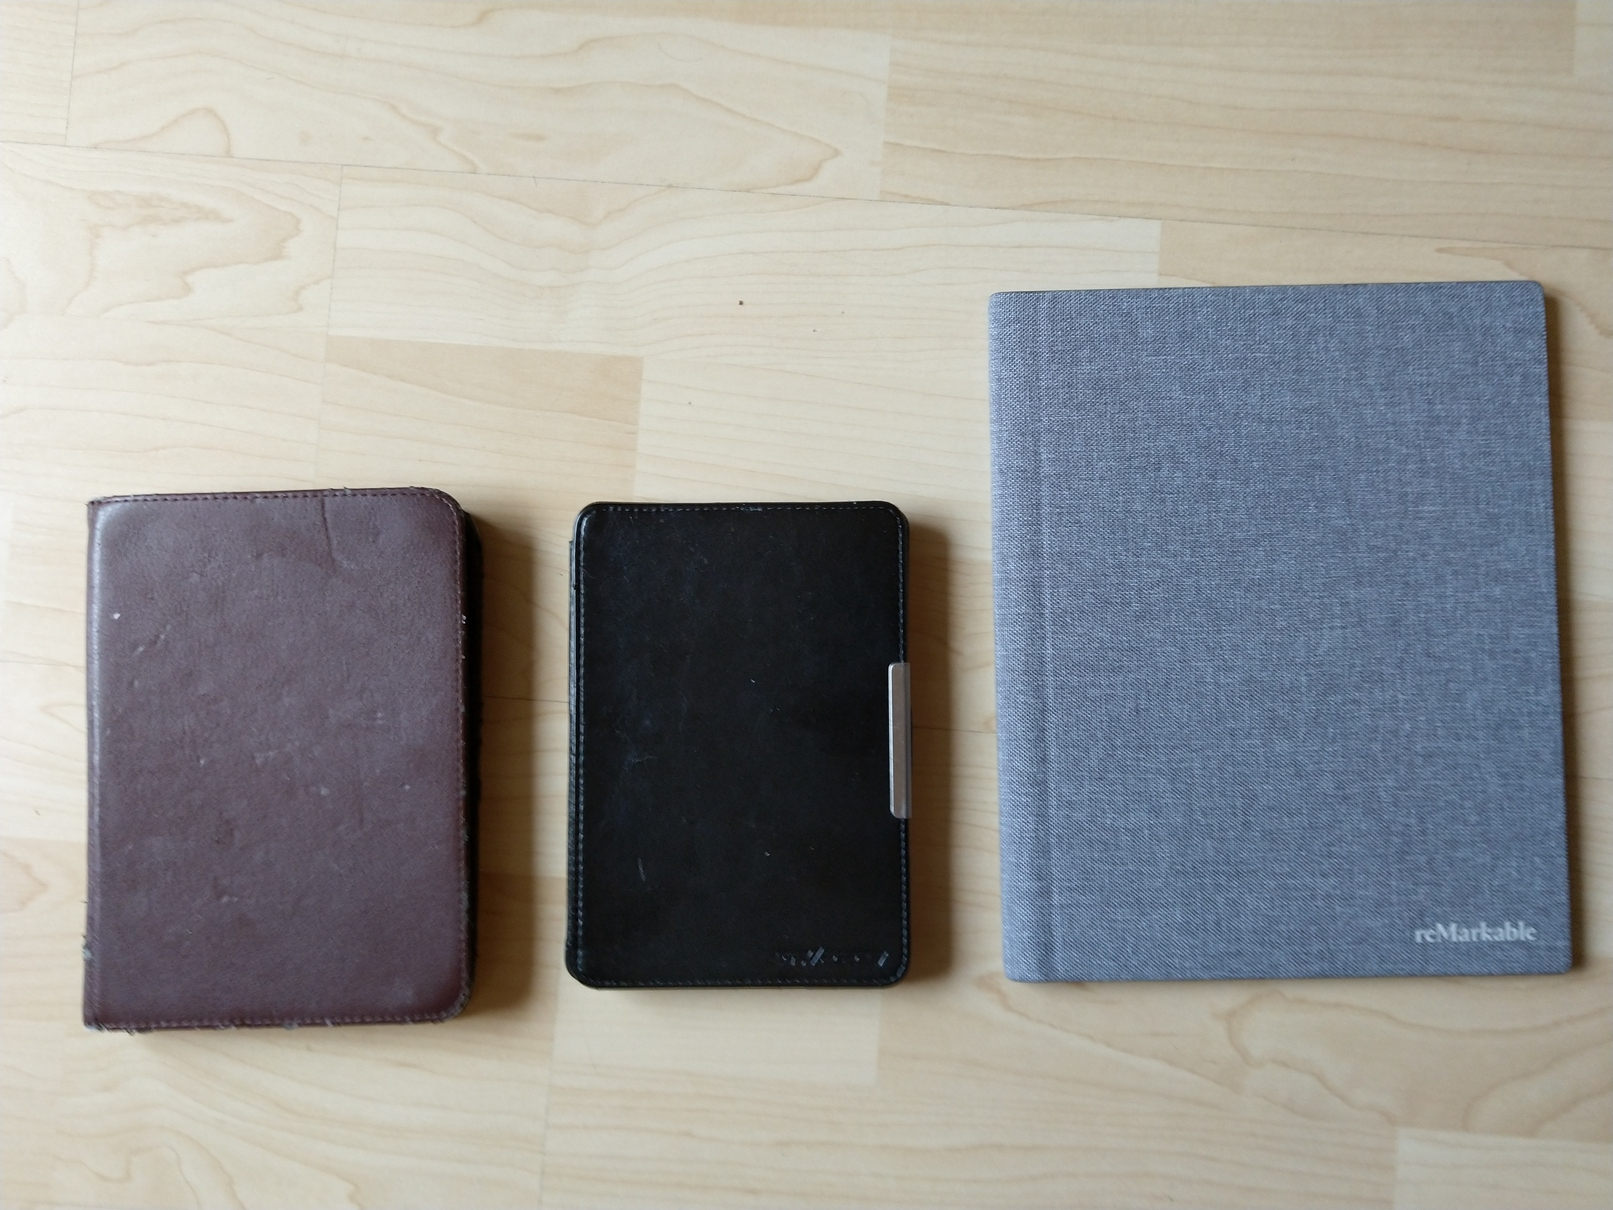 From left to right: Tolino Shine, Amazon Kindle, reMarkable2